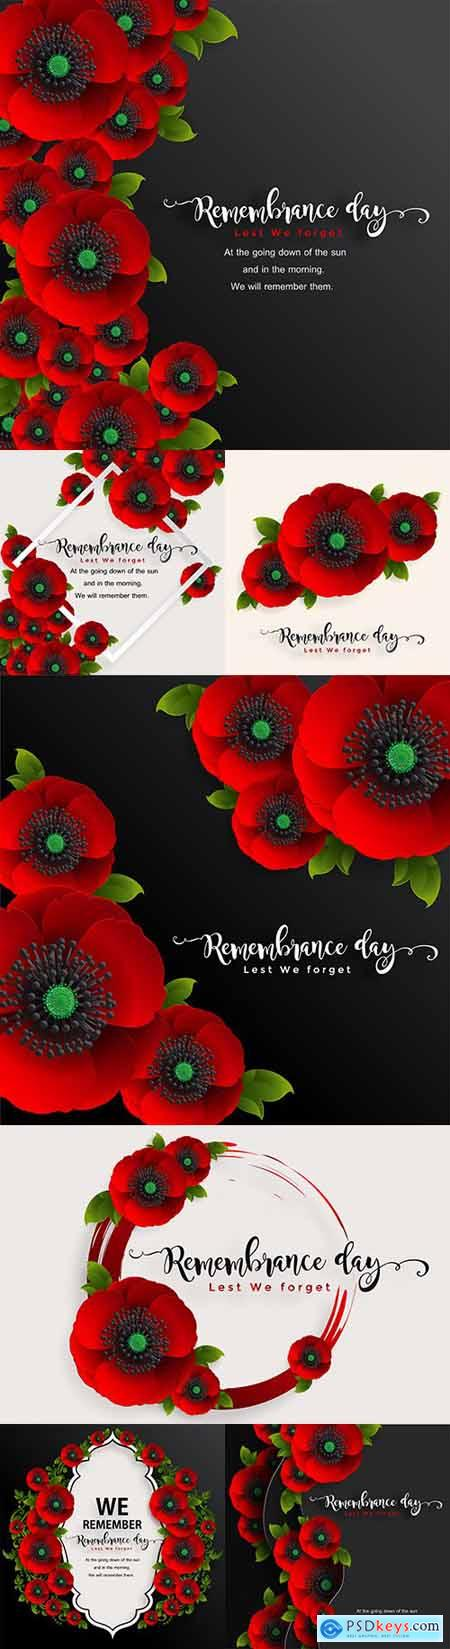 Memorial Day realistic red poppy flower decorative design